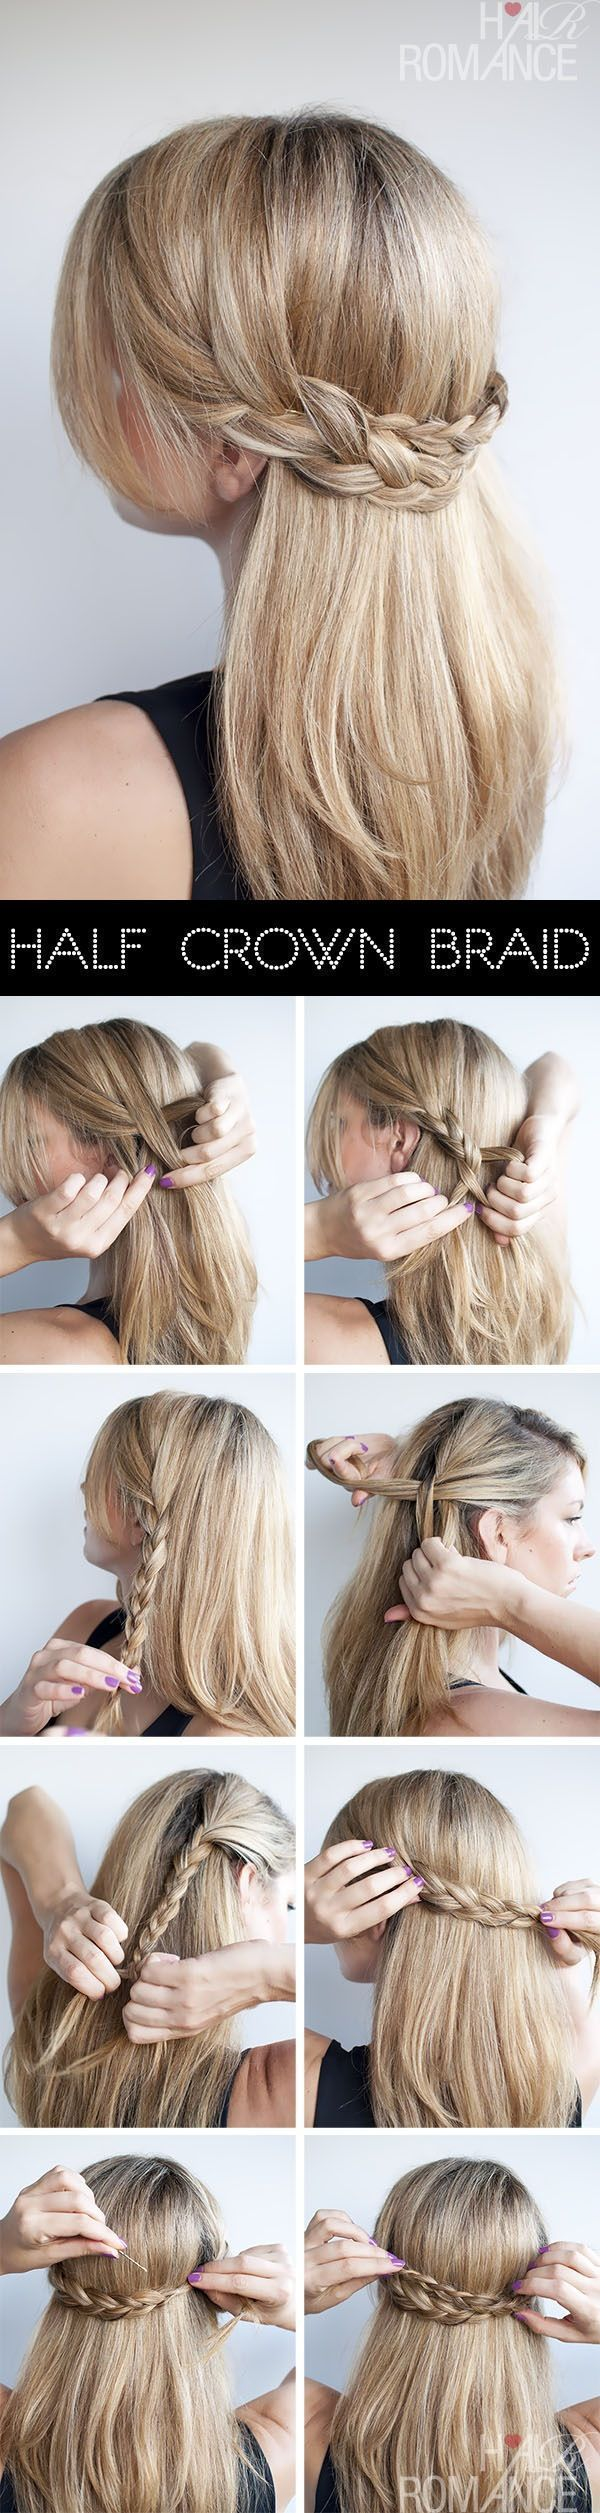 15 Simple No-Heat Hairstyles for Dirty Hair #noheathair